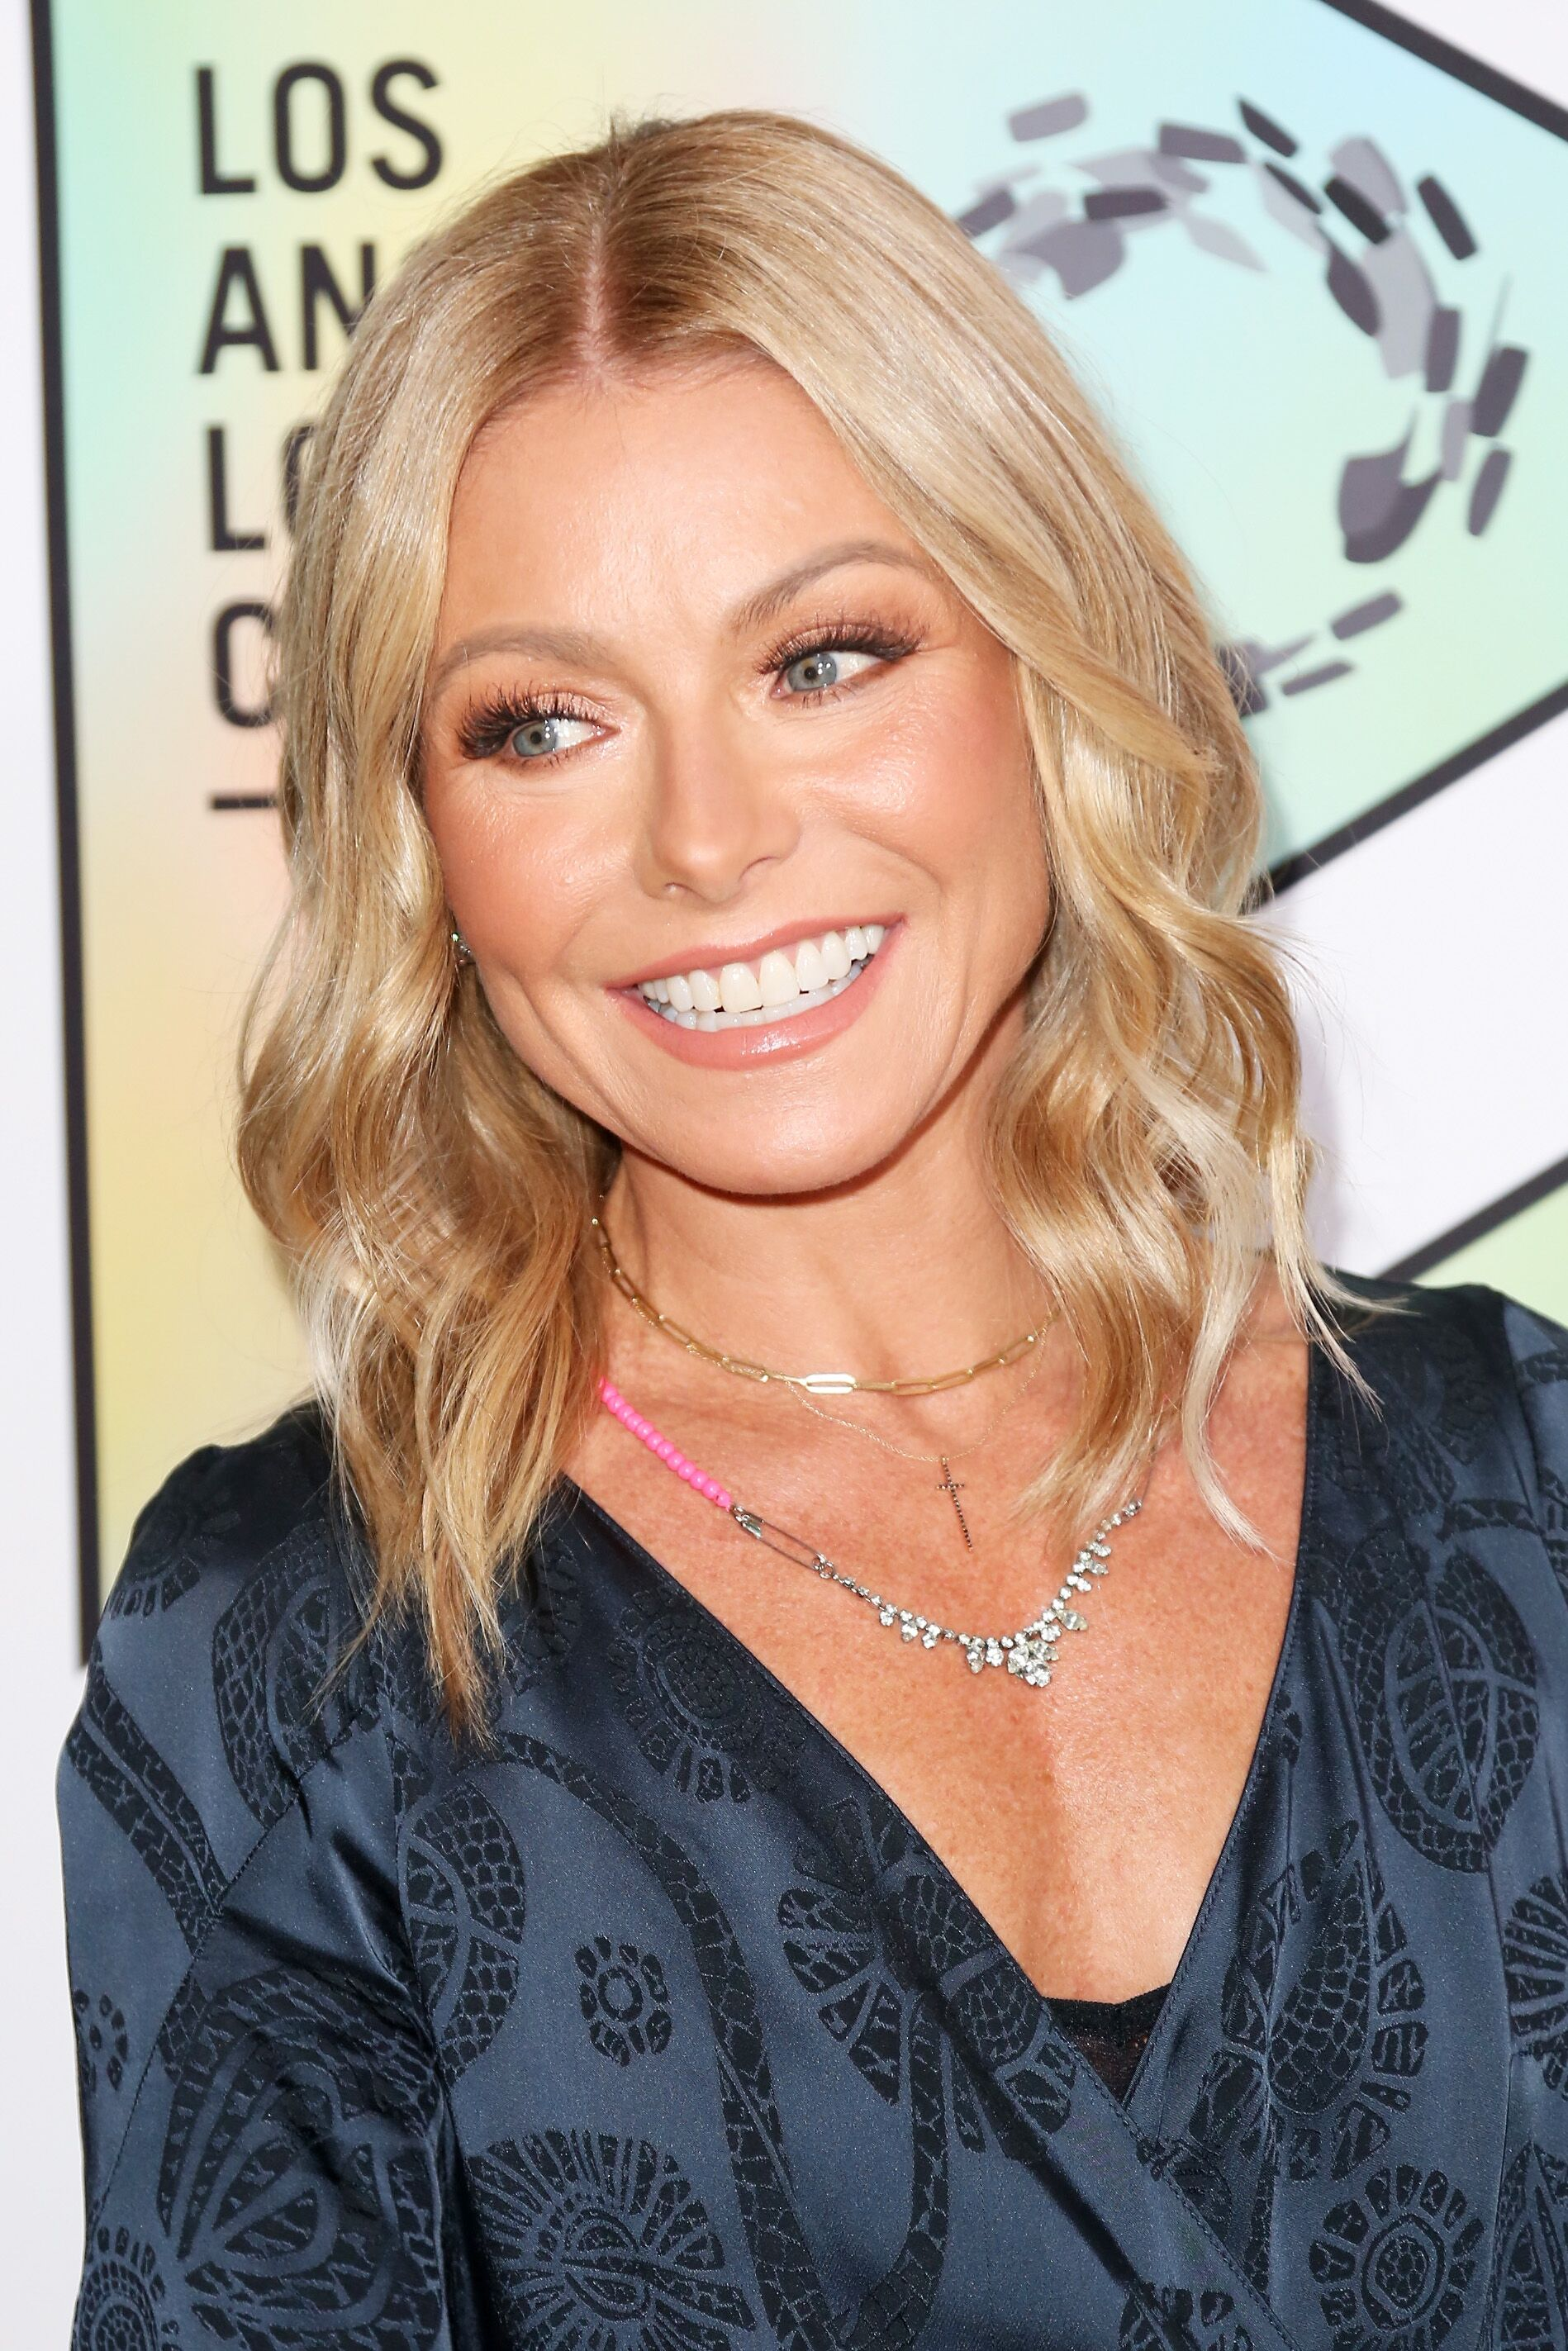 Kelly Ripa arrives at the Los Angeles LGBT Center's 49th Anniversary Gala.   Source: Getty Images